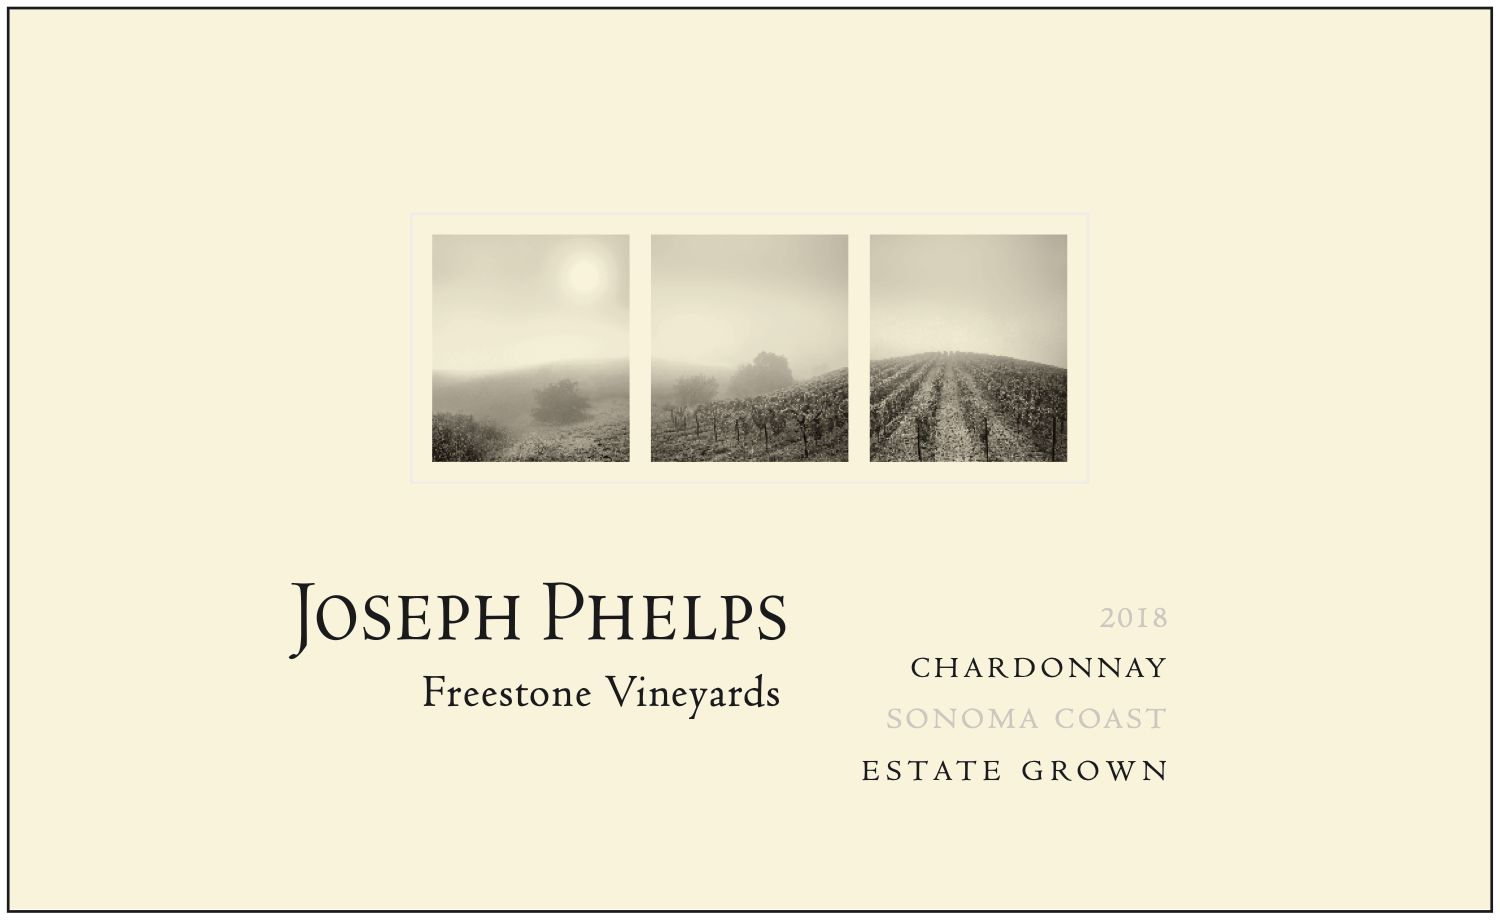 Joseph Phelps Freestone Vineyards Sonoma Coast Chardonnay 2018  Front Label